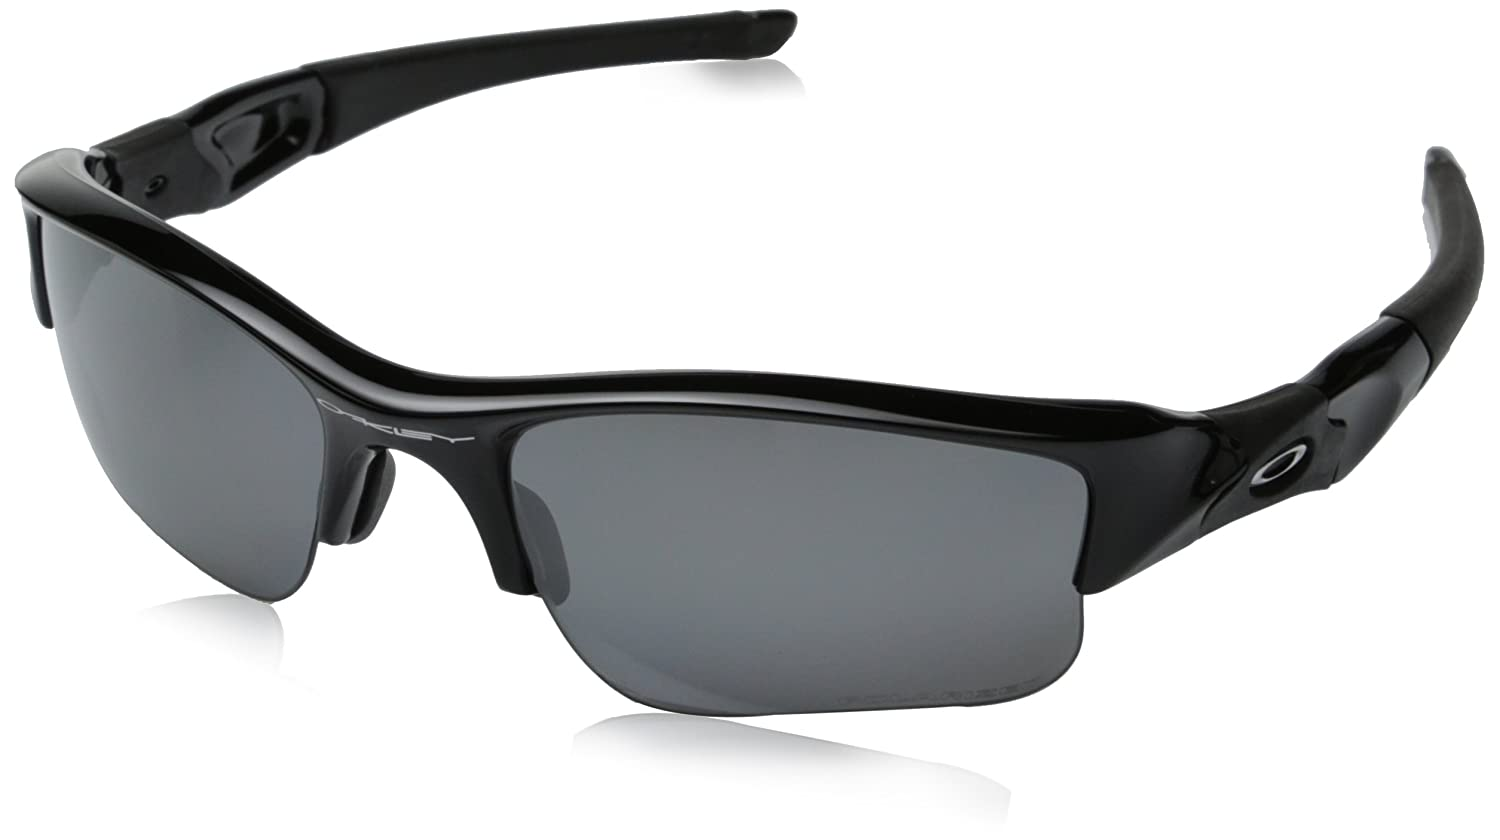 1a04ed40f1 Amazon.com  Oakley Flak Jacket XLJ Adult Polarized Sport Outdoor Sunglasses Eyewear  - Jet Black Black Iridium One Size Fits All  Oakley  Shoes